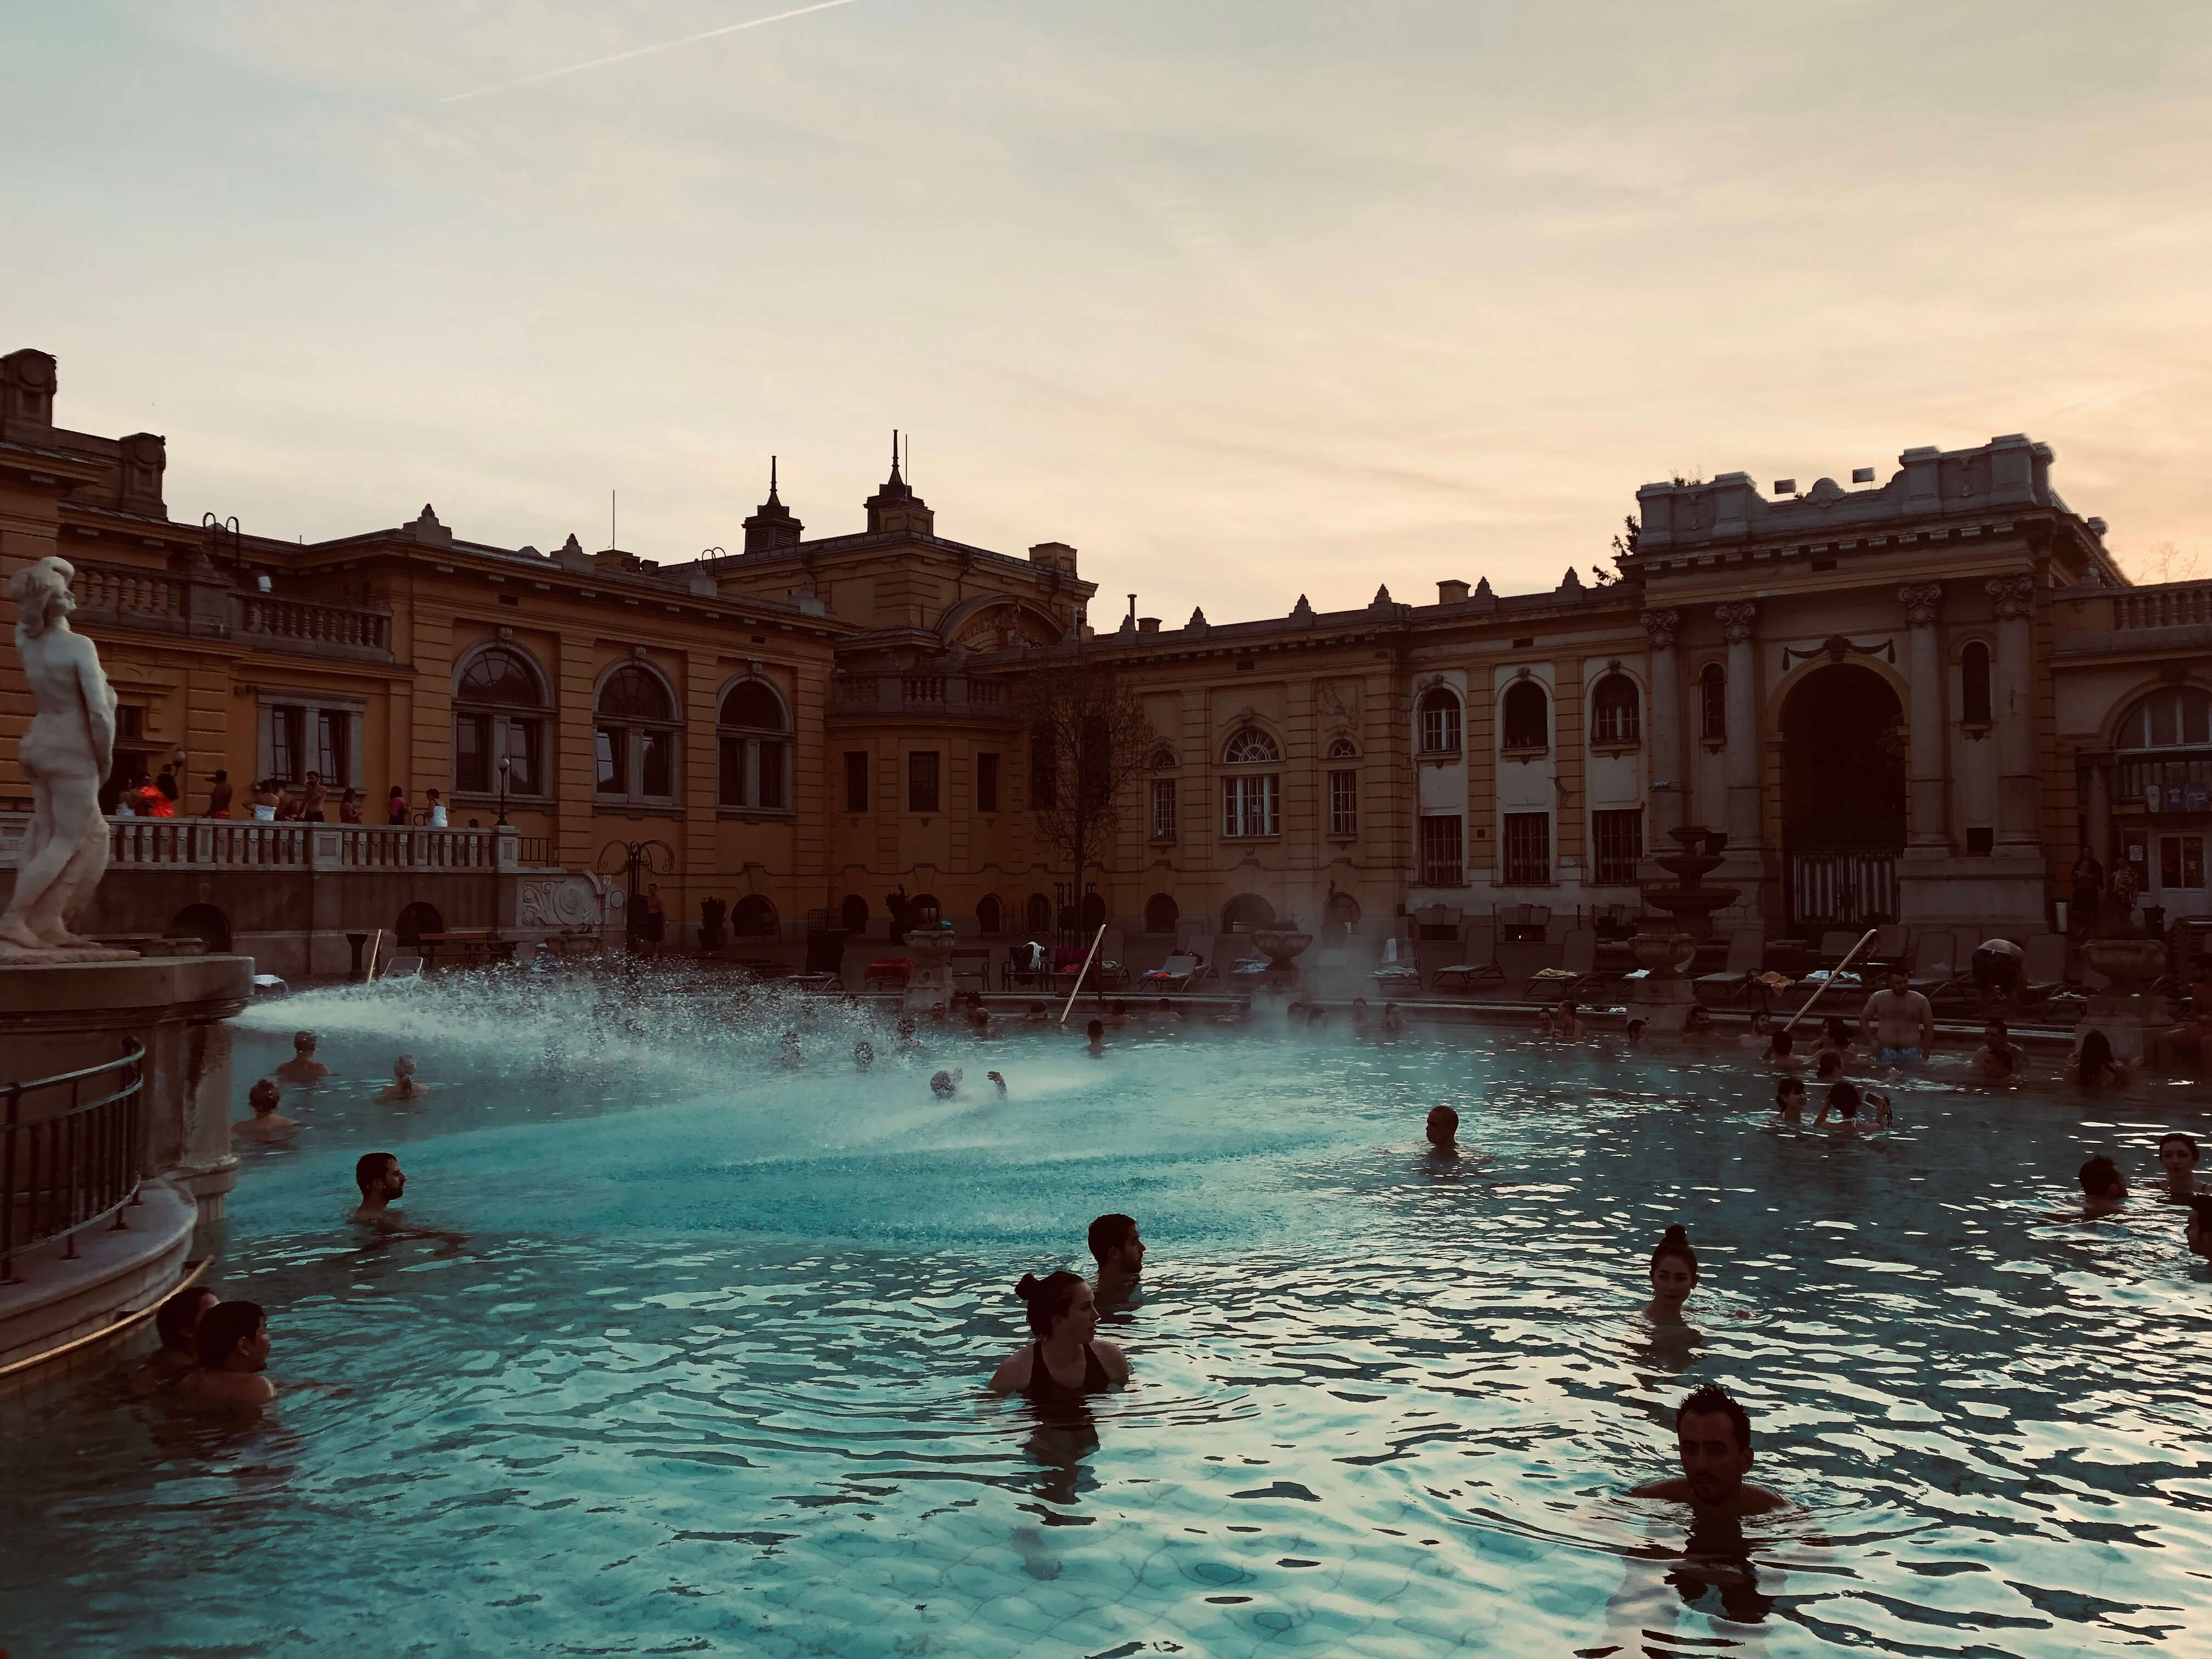 Szechenyi Spa thermal baths are amazing check out this photo